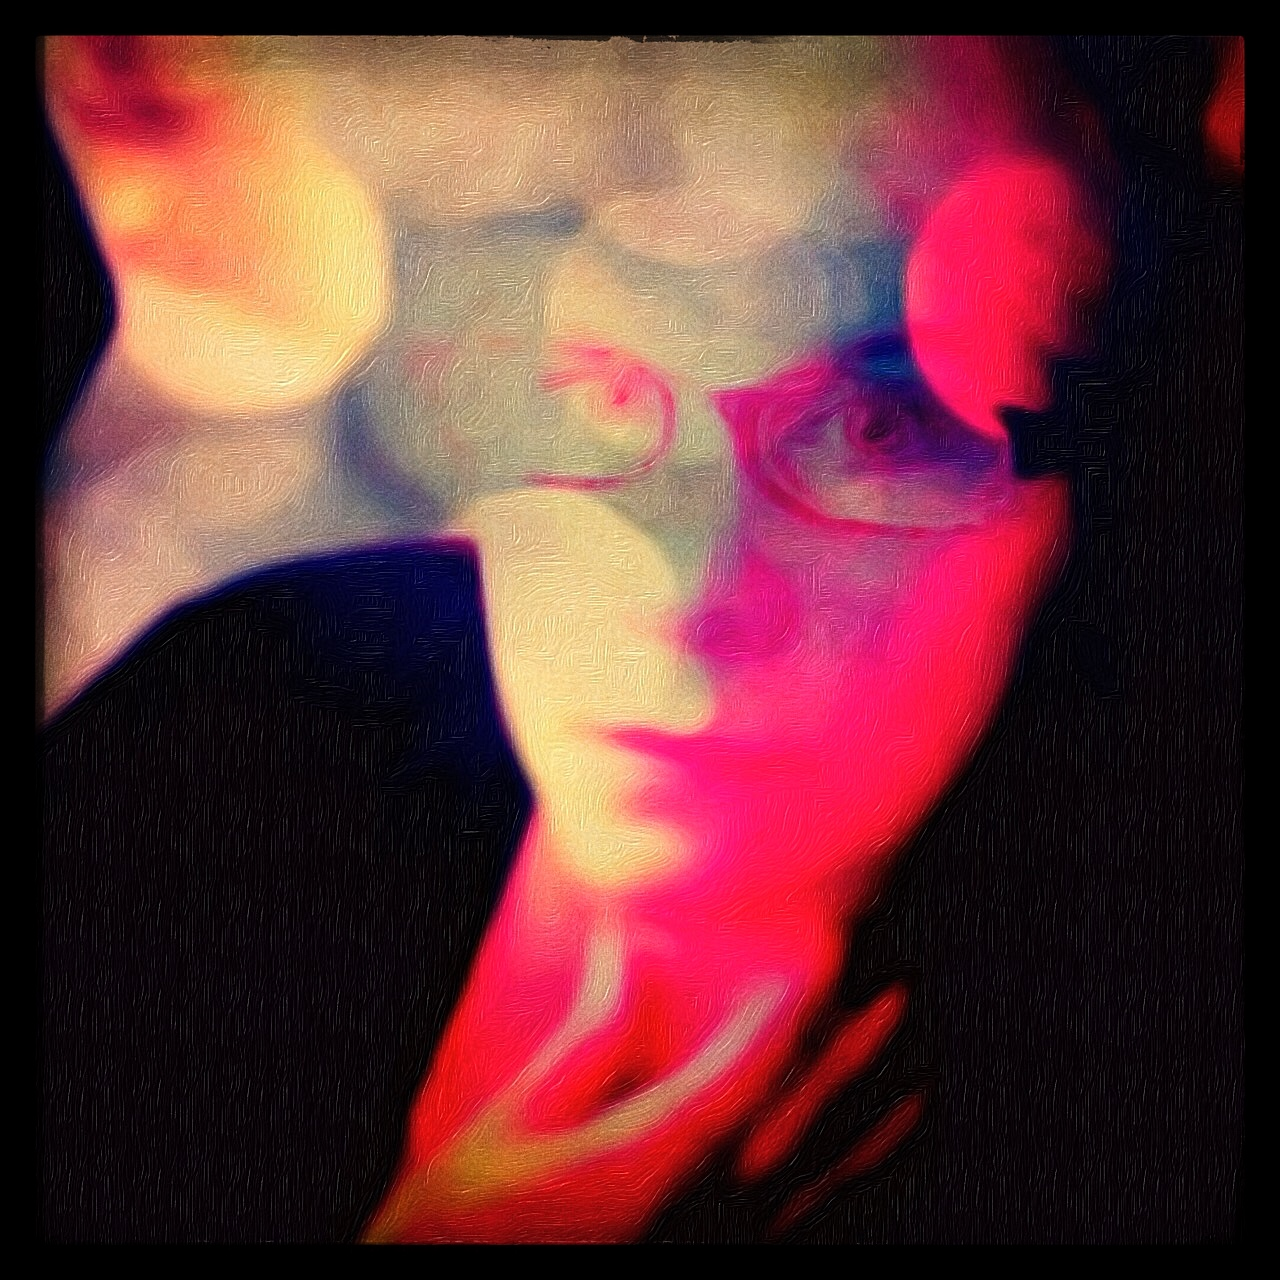 In the Dark by Kirsten Malinee. Edited with Pixlrexpress, Mextures, Brushstroke, ShockMyPic, and Snapseed.